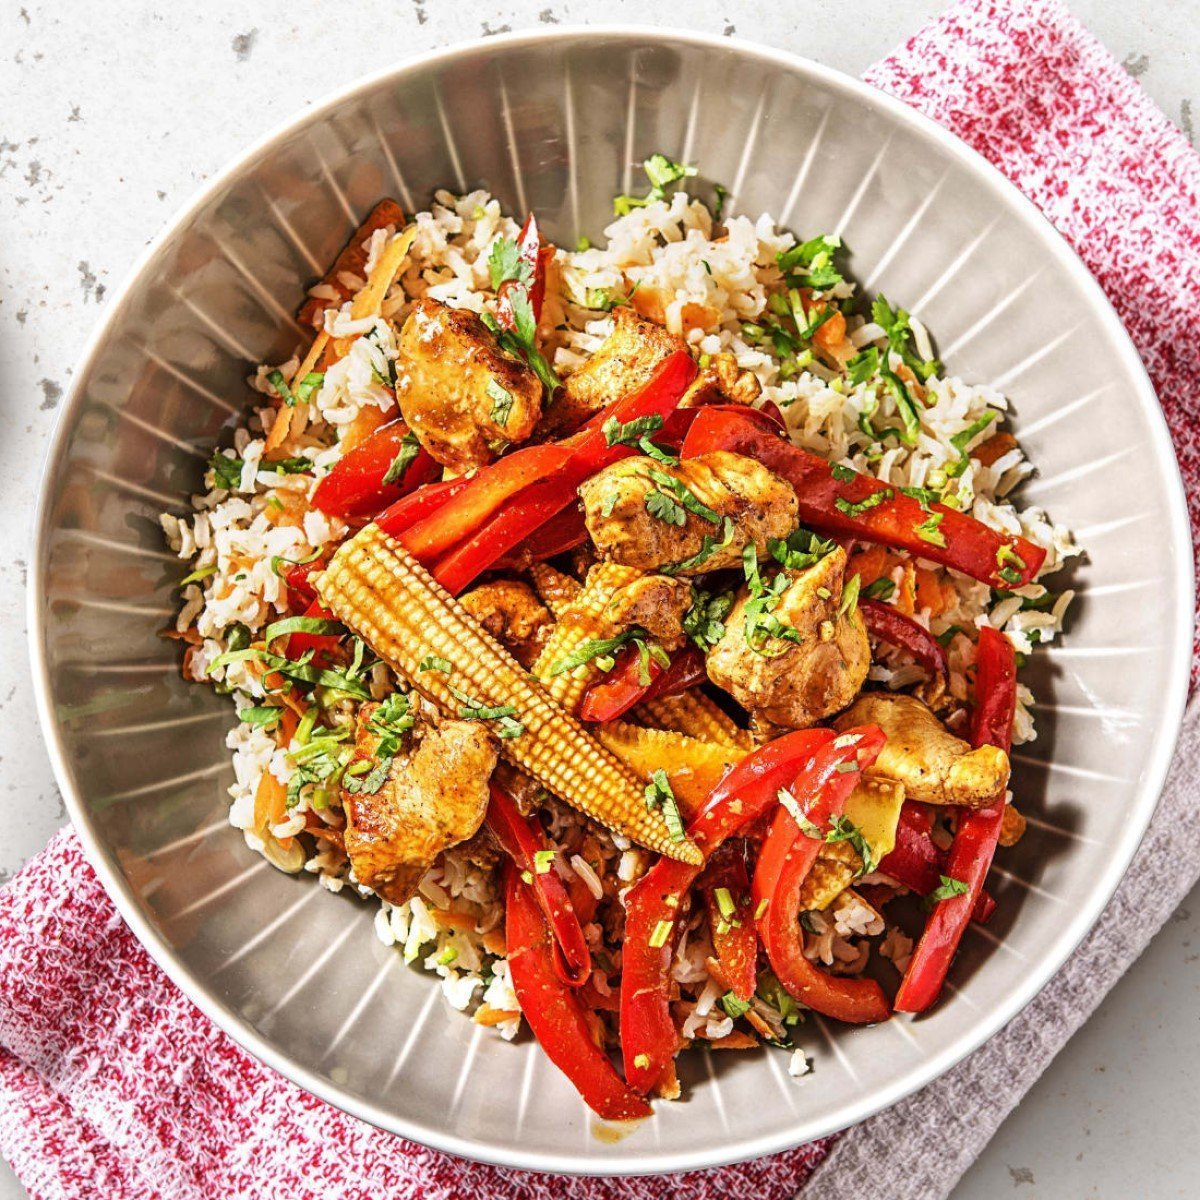 Chinese Five-Spice Chicken Stir-Fry with Brown Rice Recipe